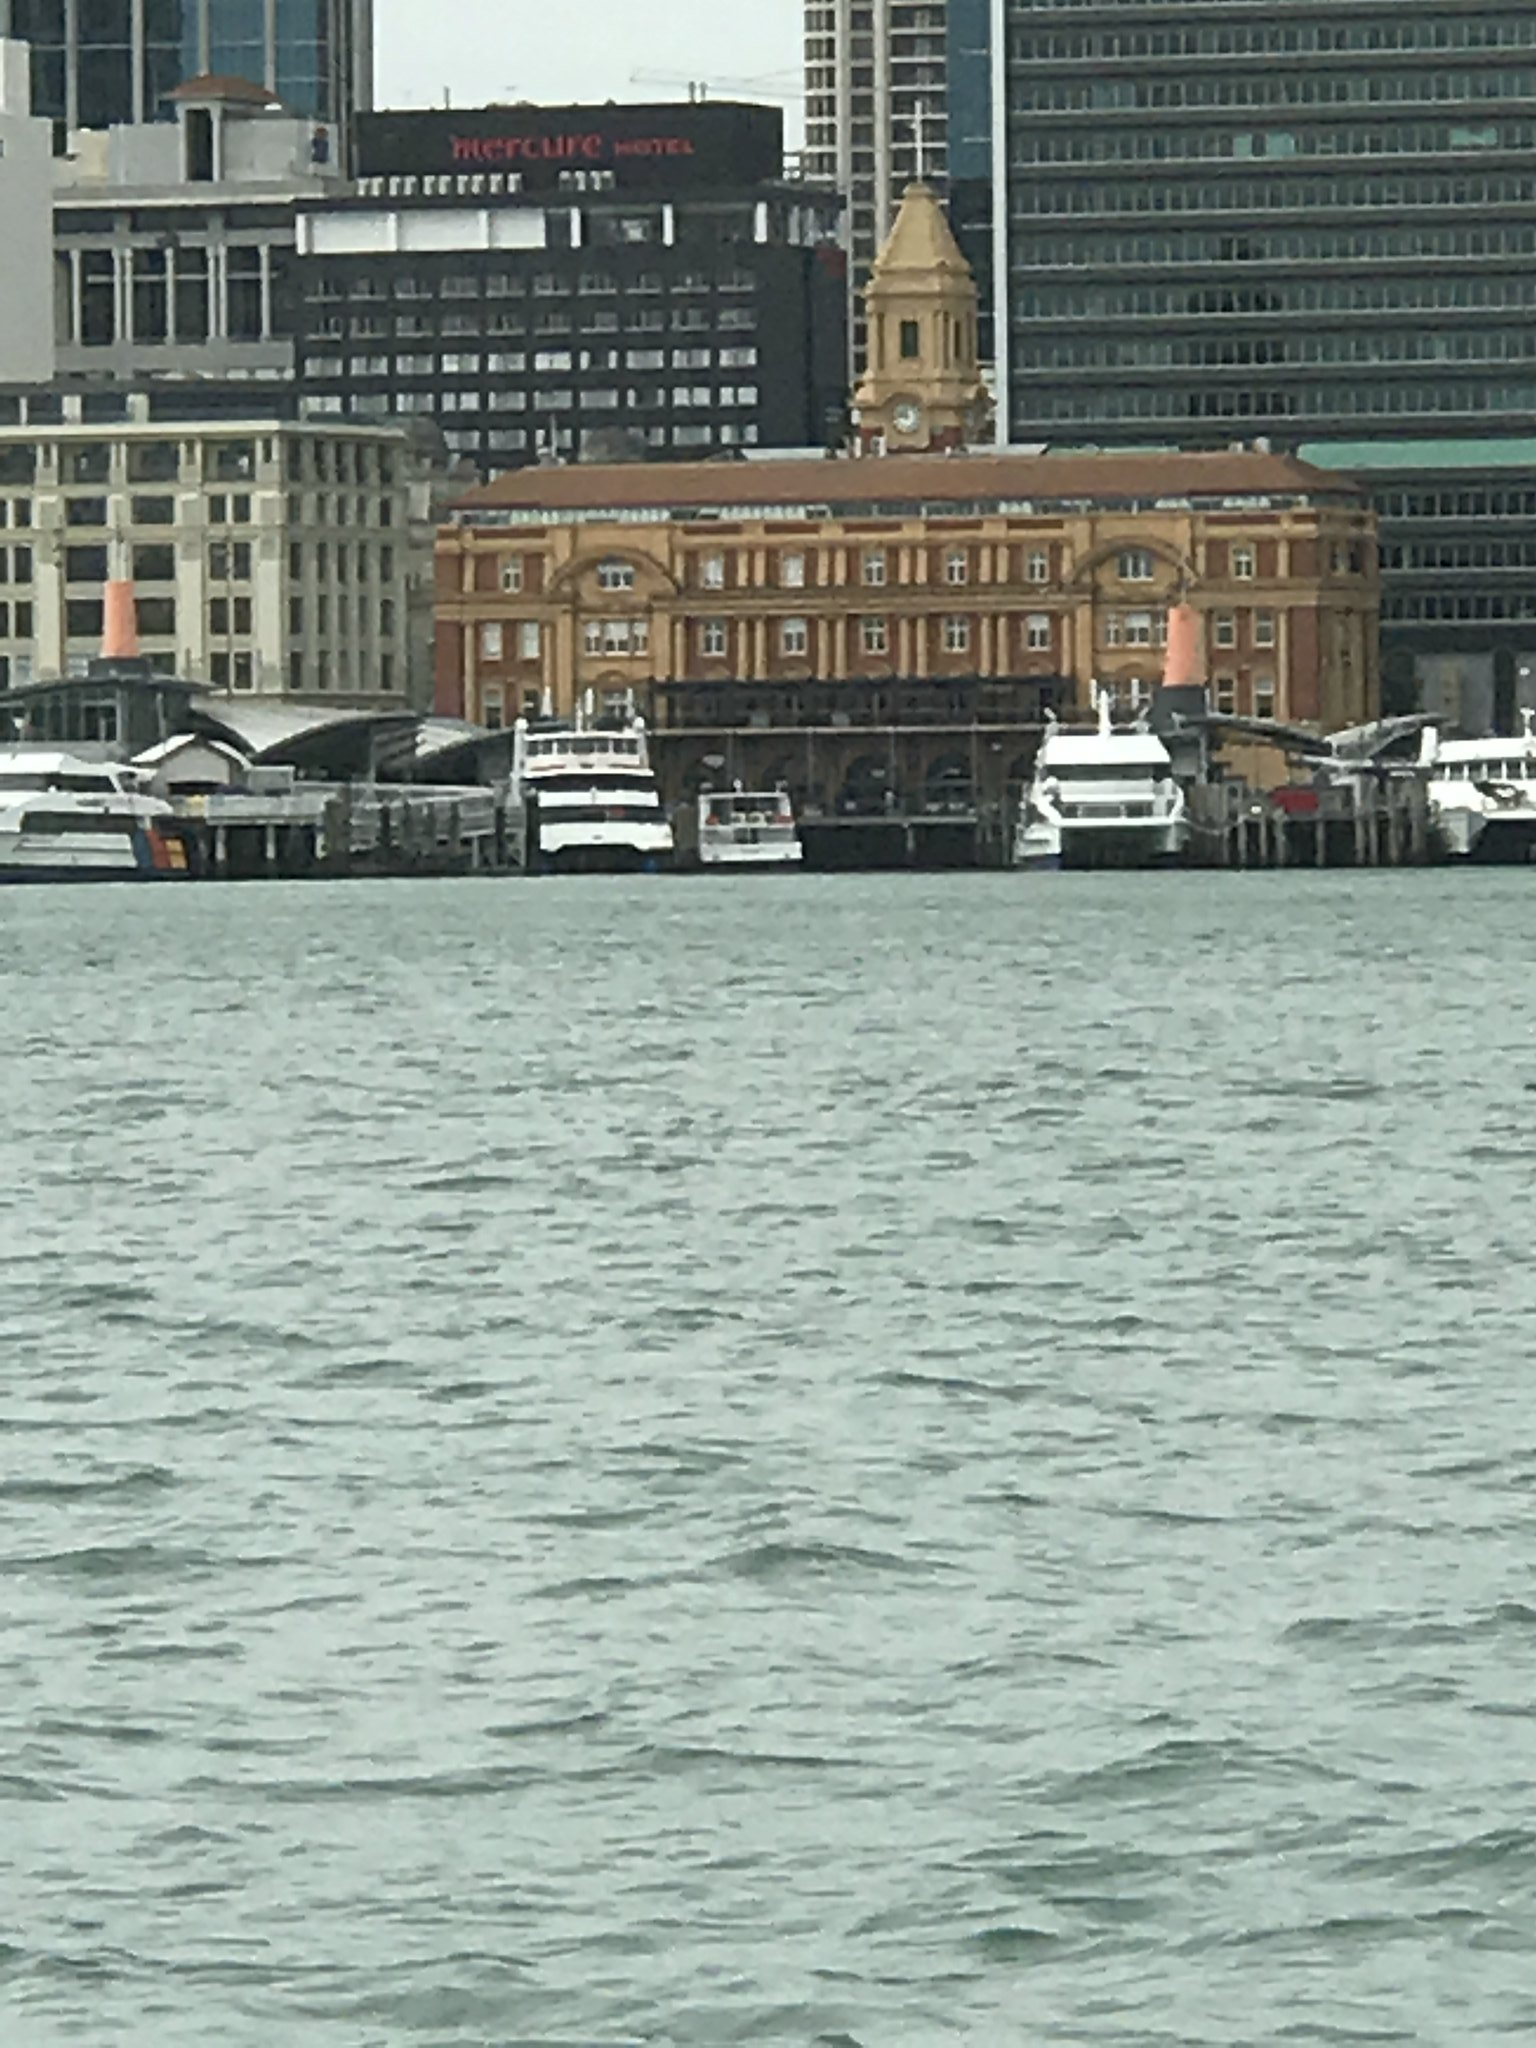 NZ Day 3-4: The Boat